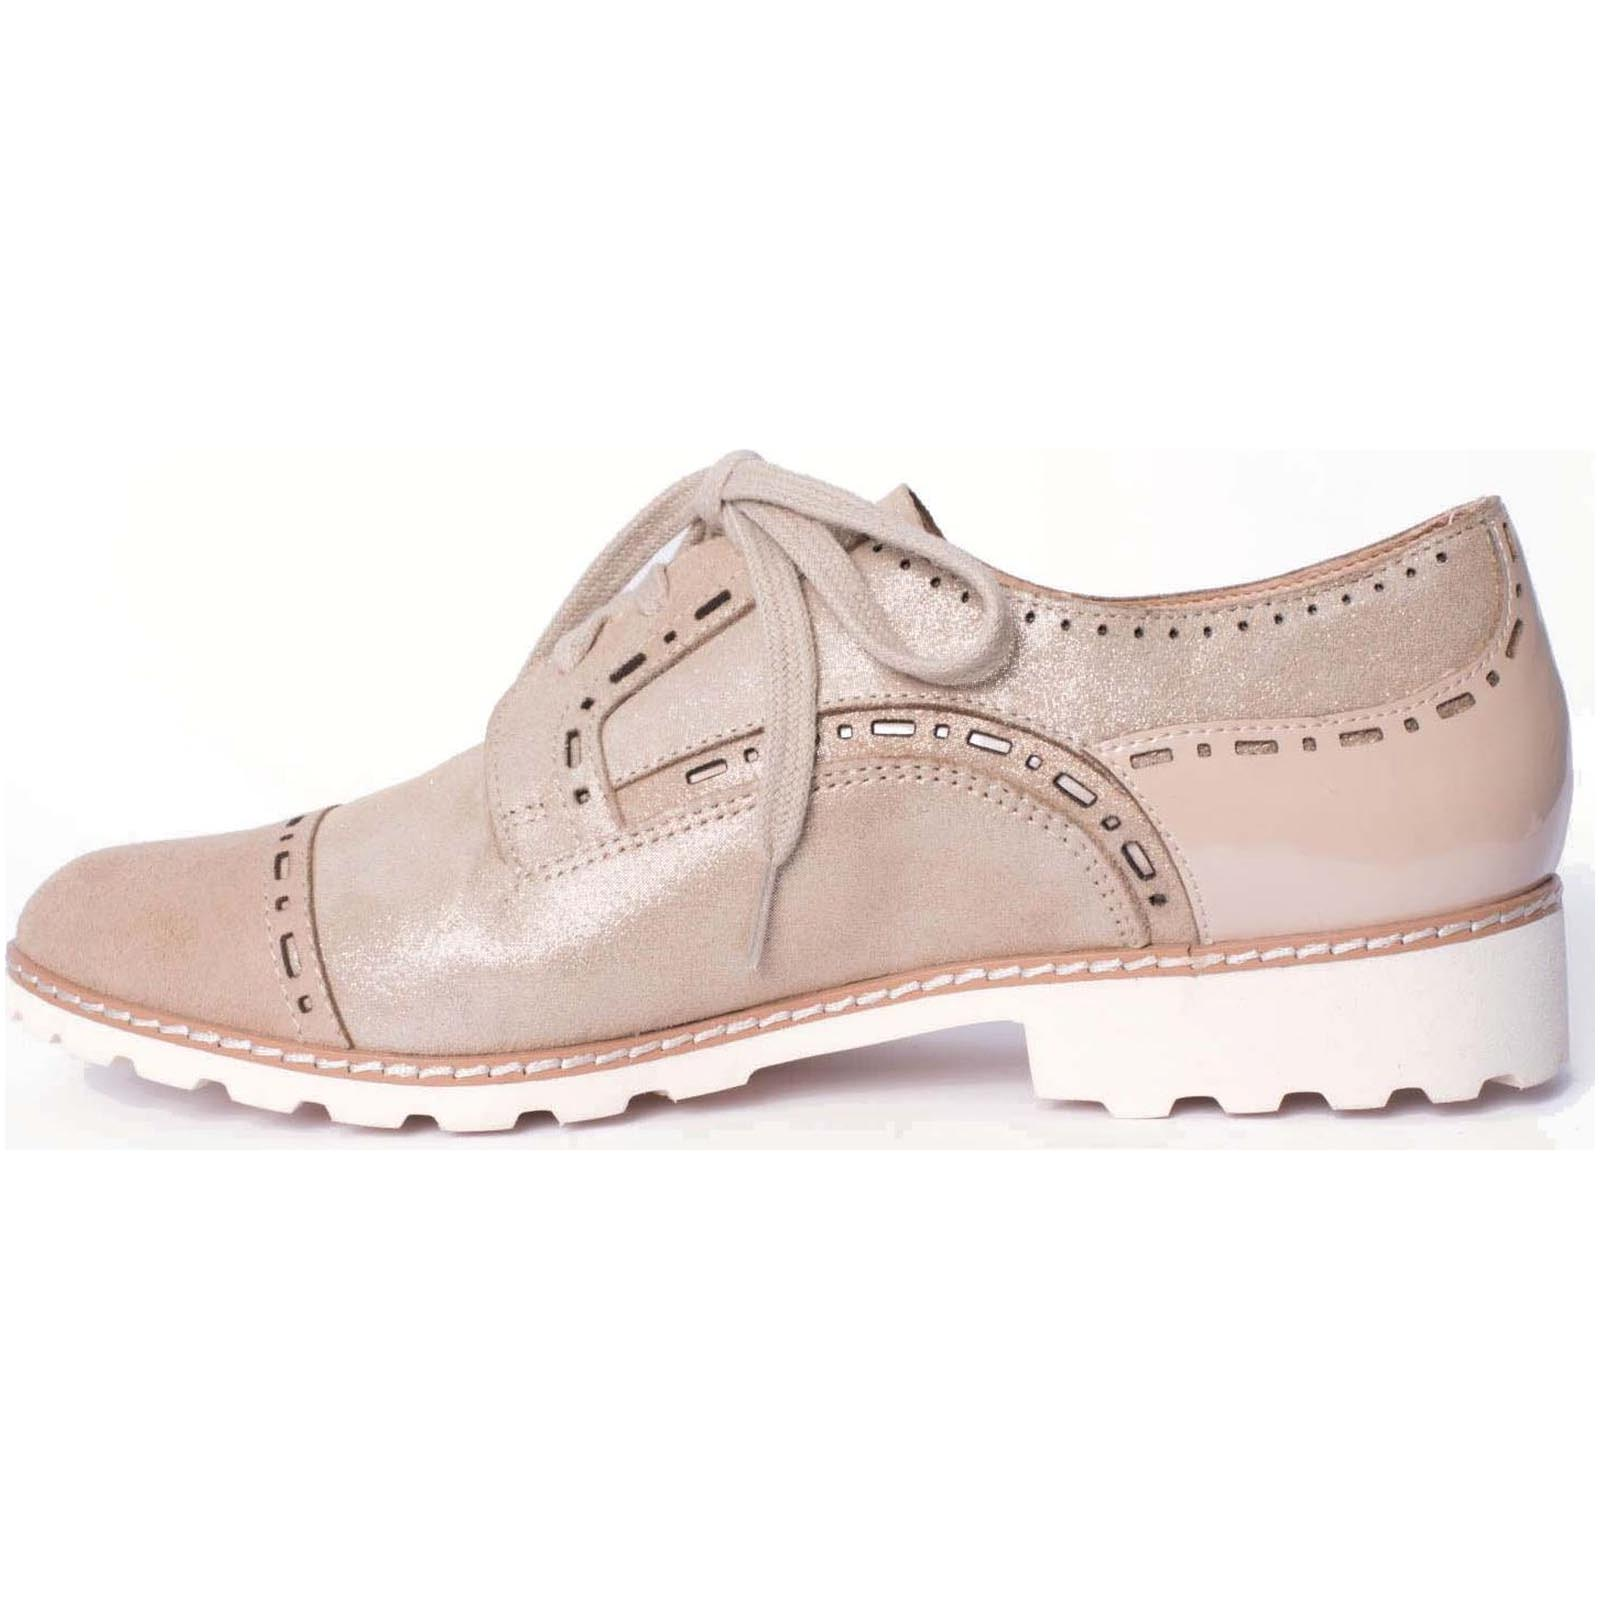 Fugitive chaussures ville lacets willer marron8003801_6